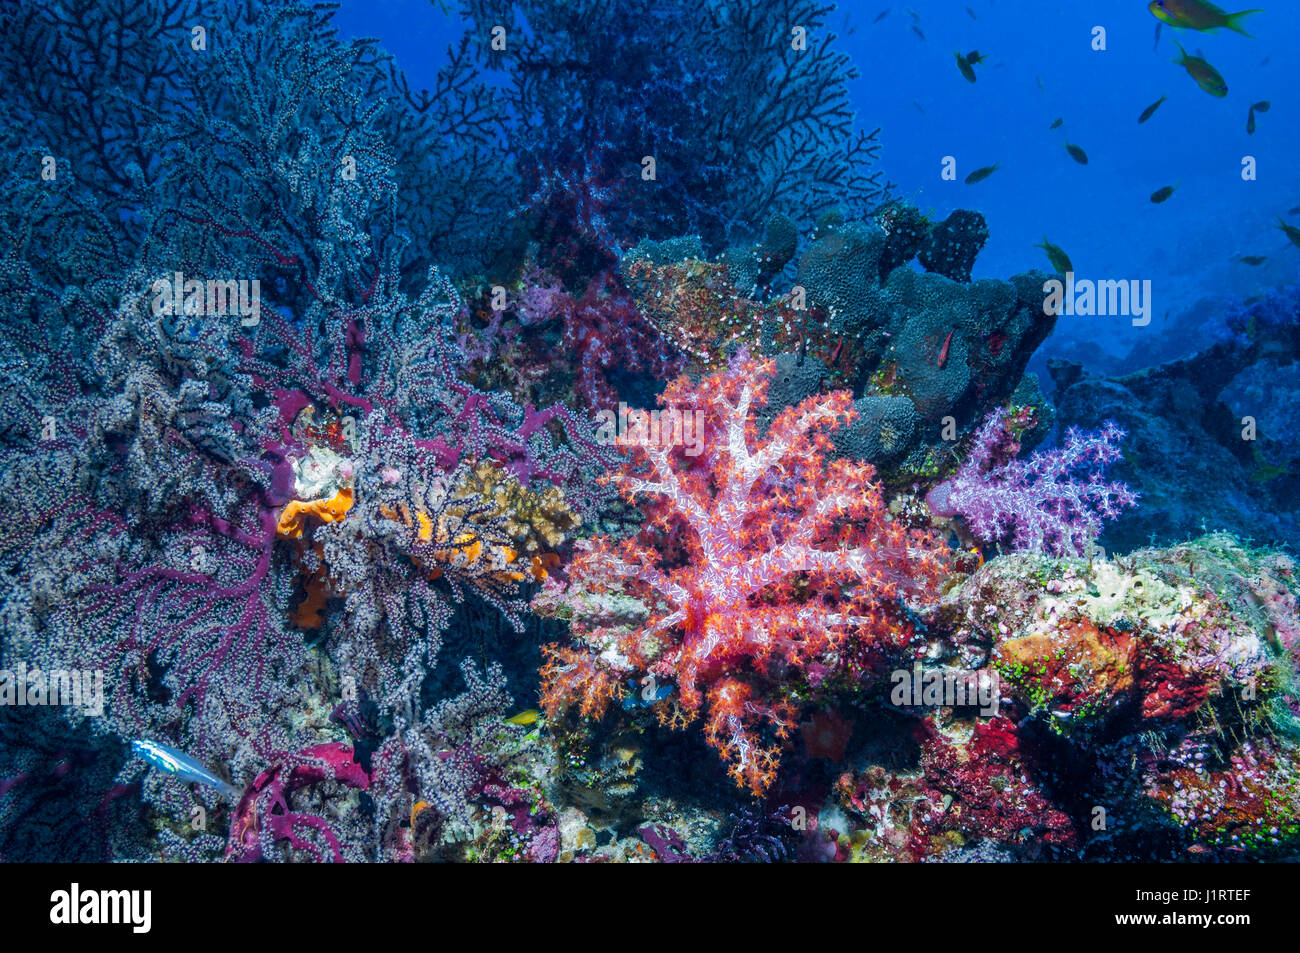 Soft corals [Dendronephthya sp.] and gorgonians.  Similan Islands, Andaman Sea, Thailand. - Stock Image